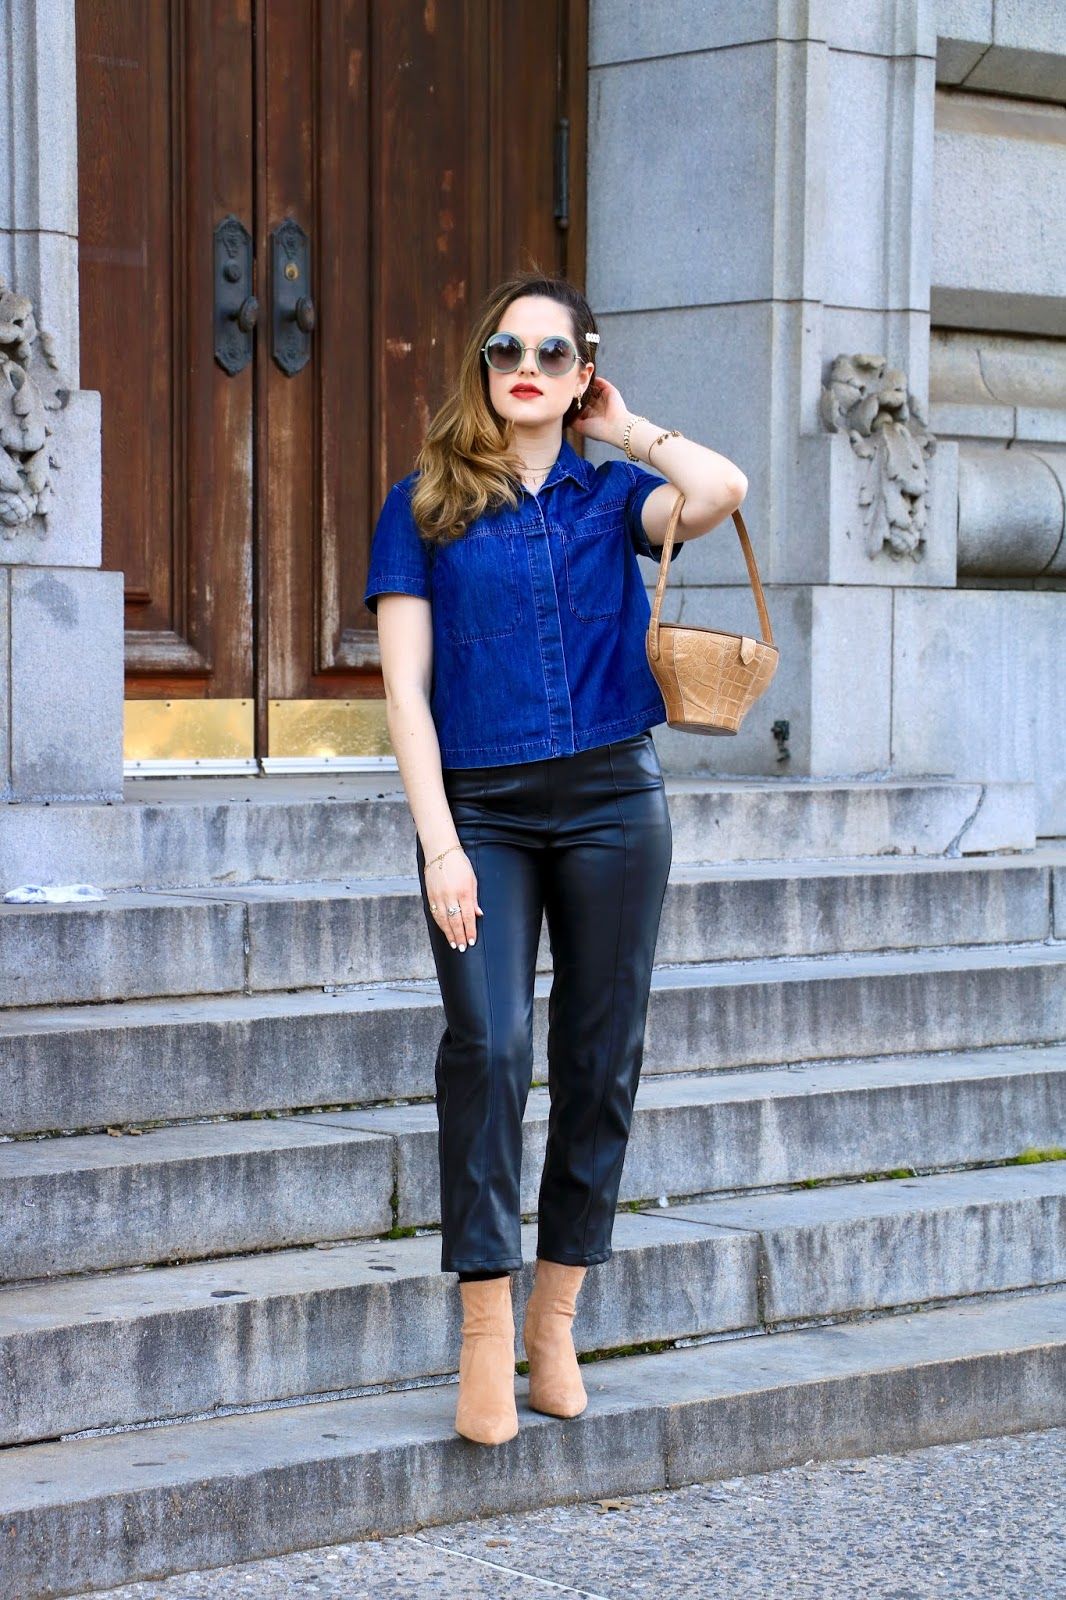 Nyc fashion blogger Kathleen Harper wearing a leather pants outfit in spring.